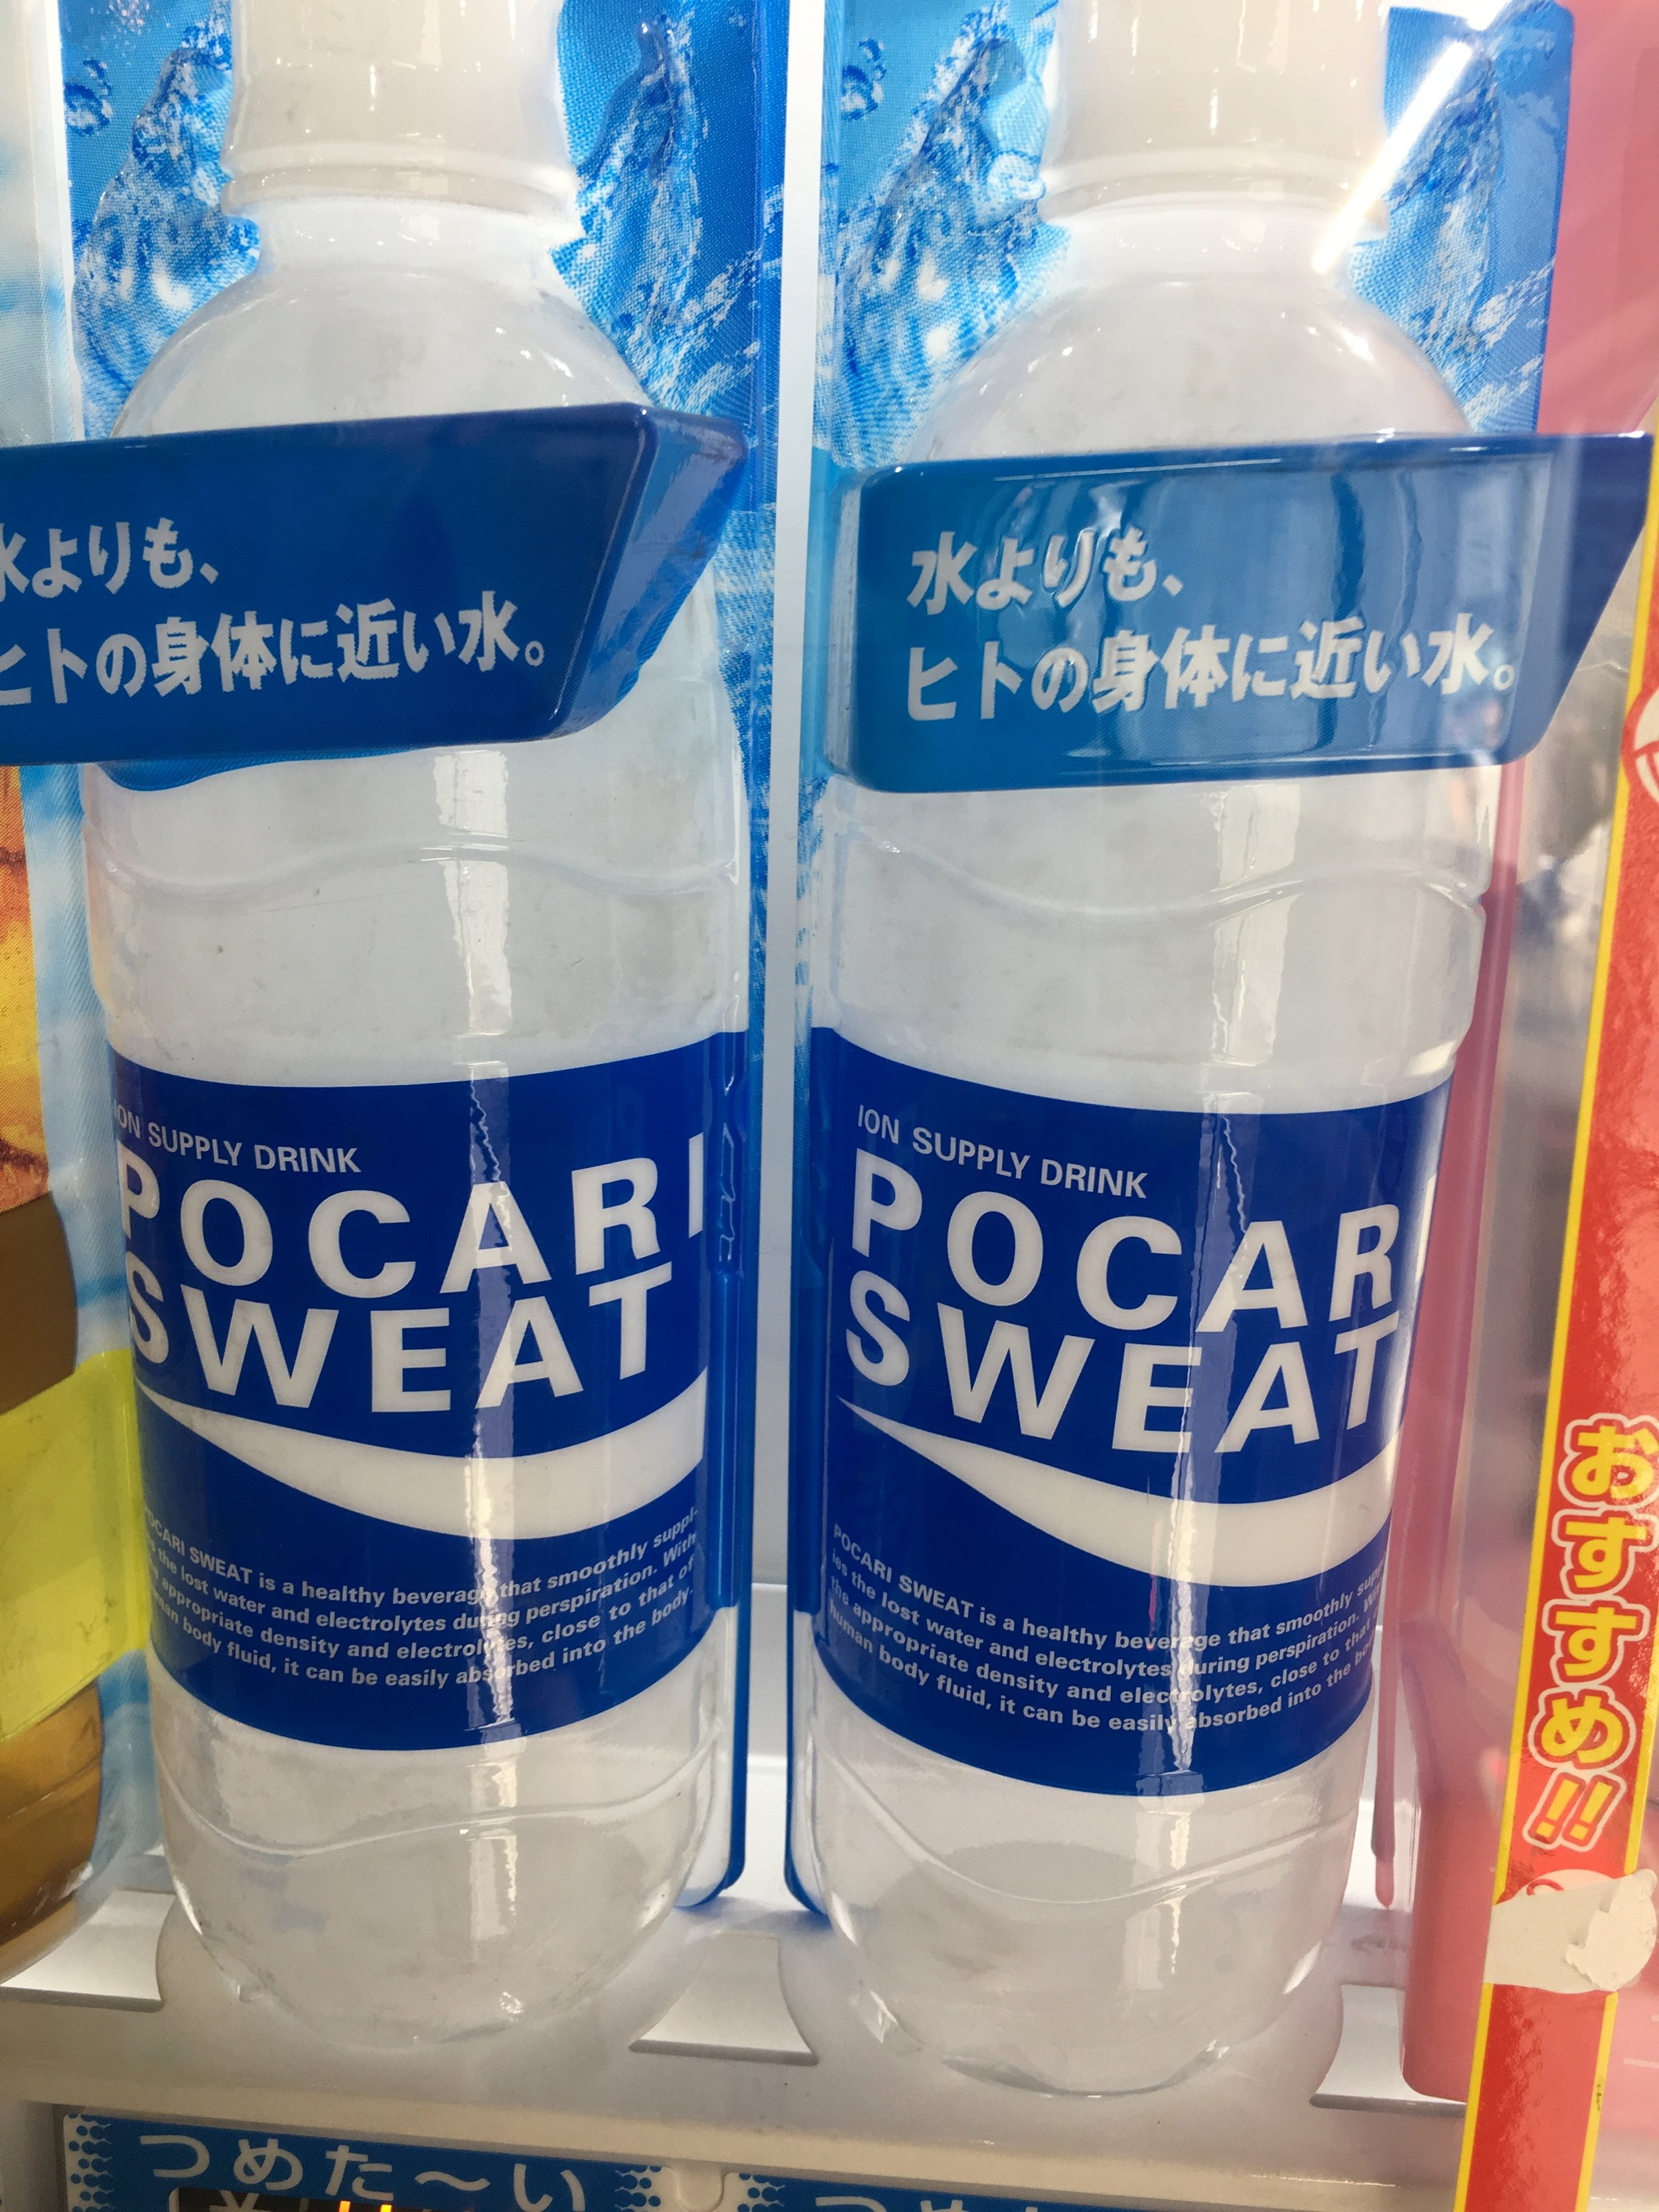 Vending machines are EVERYWHERE (and I do mean everywhere - inside buildings, in parks, on the sidewalks even in residential areas). And they all have this deliciously-named Pocari Sweat drink (something like Gatorade, apparently).